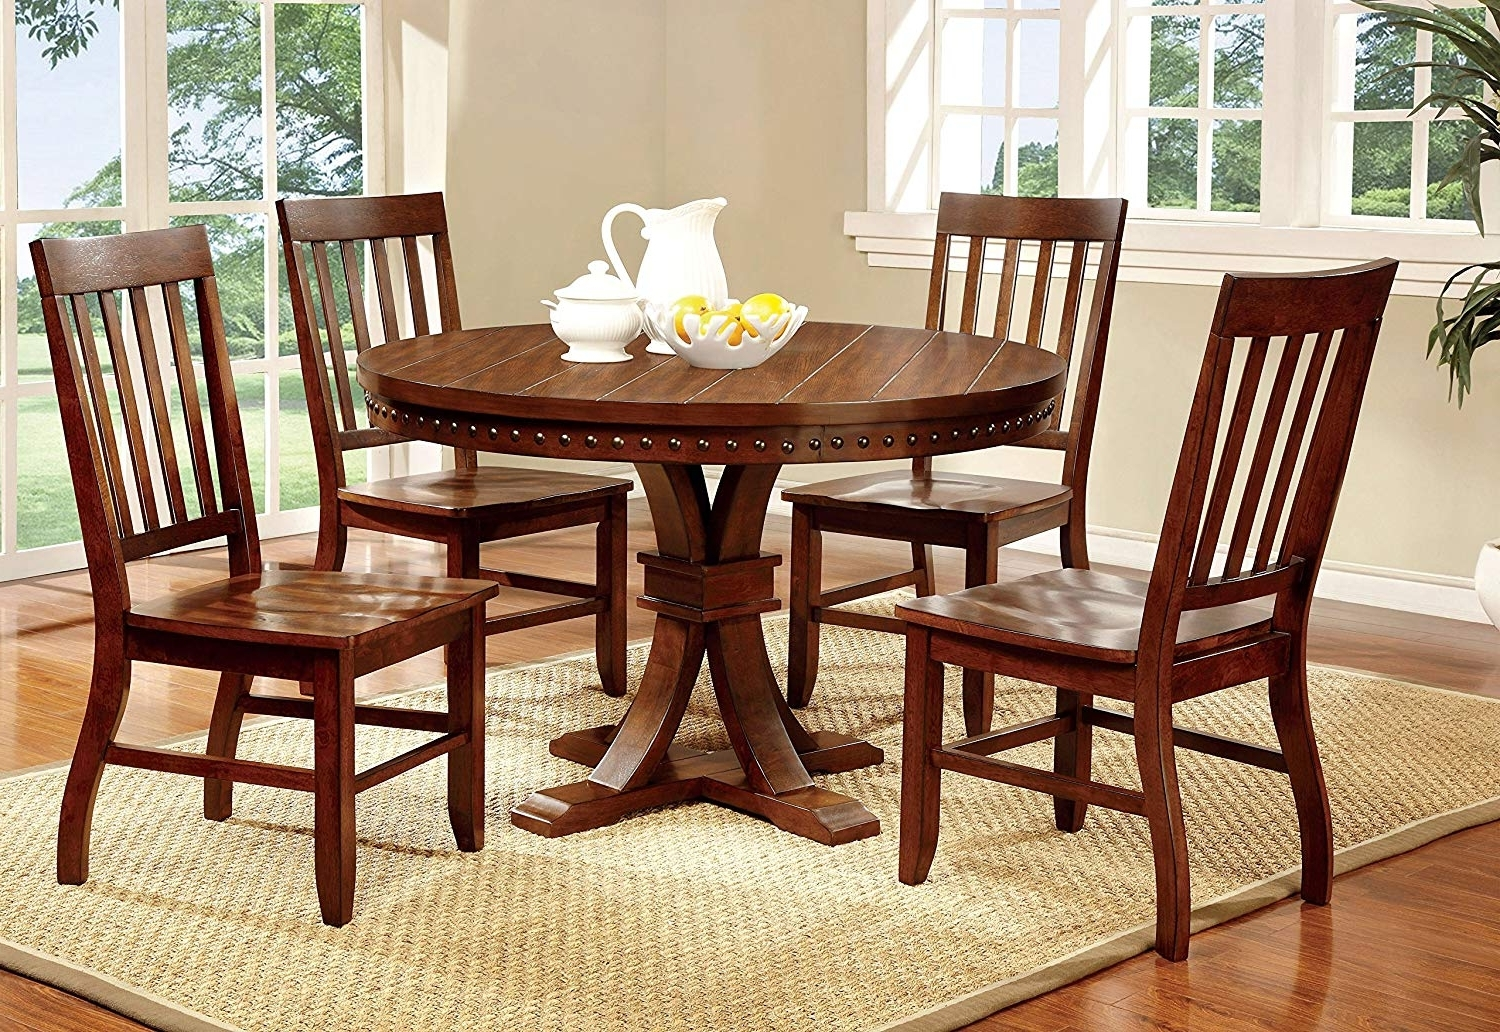 Amazon – Furniture Of America Castile 5 Piece Transitional Round With Regard To Popular Dark Round Dining Tables (View 1 of 25)